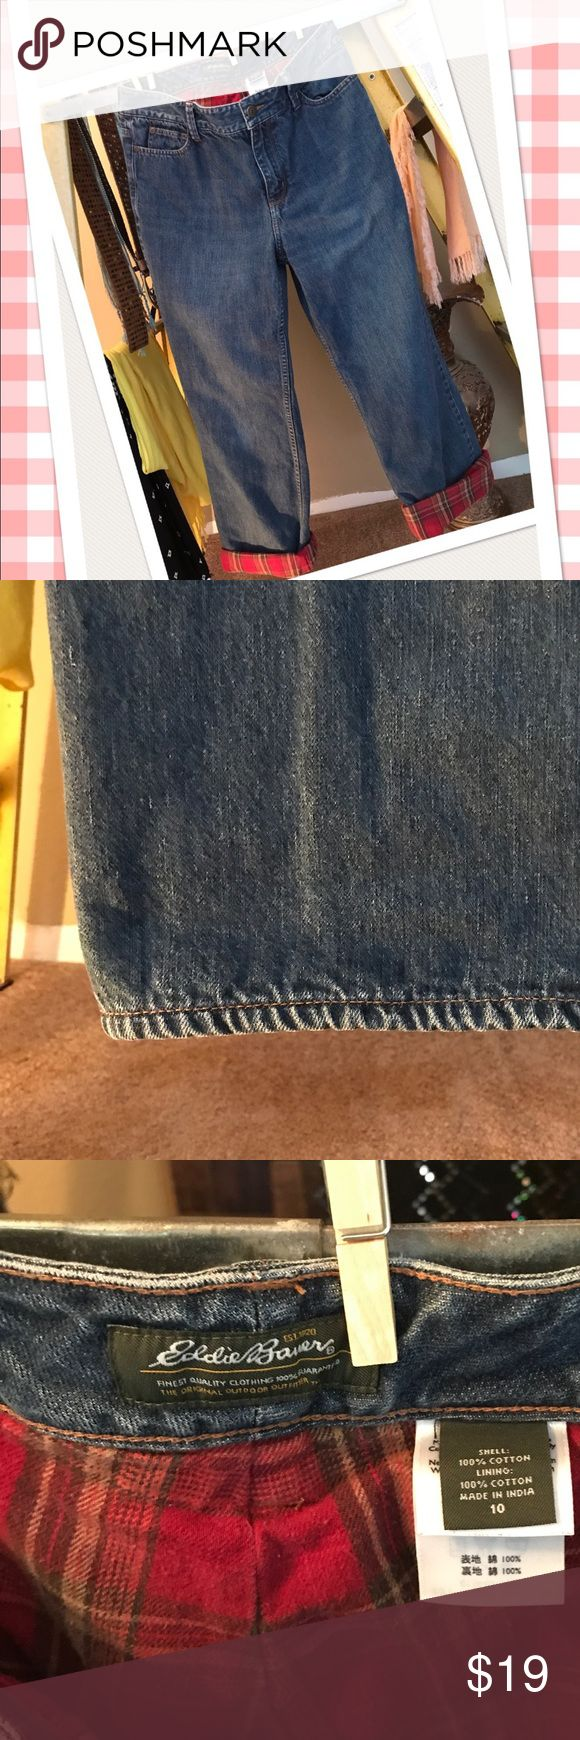 """Eddie Bauer Flannel Lined Jeans Winter ❄️ will be here and these flannel lined jeans will be perfect for hiking or those long boring cold football 🏈 games😂 10"""" front rise and 30"""" inseam. Heavy duty and warm. No holes rips tears or stains. Good pre-owned condition with signs of wear from washing and normal use. 👀all pics, ask ?s 👀Pet Friendly and No Smoke 💨 🏡 Eddie Bauer Jeans Straight Leg"""